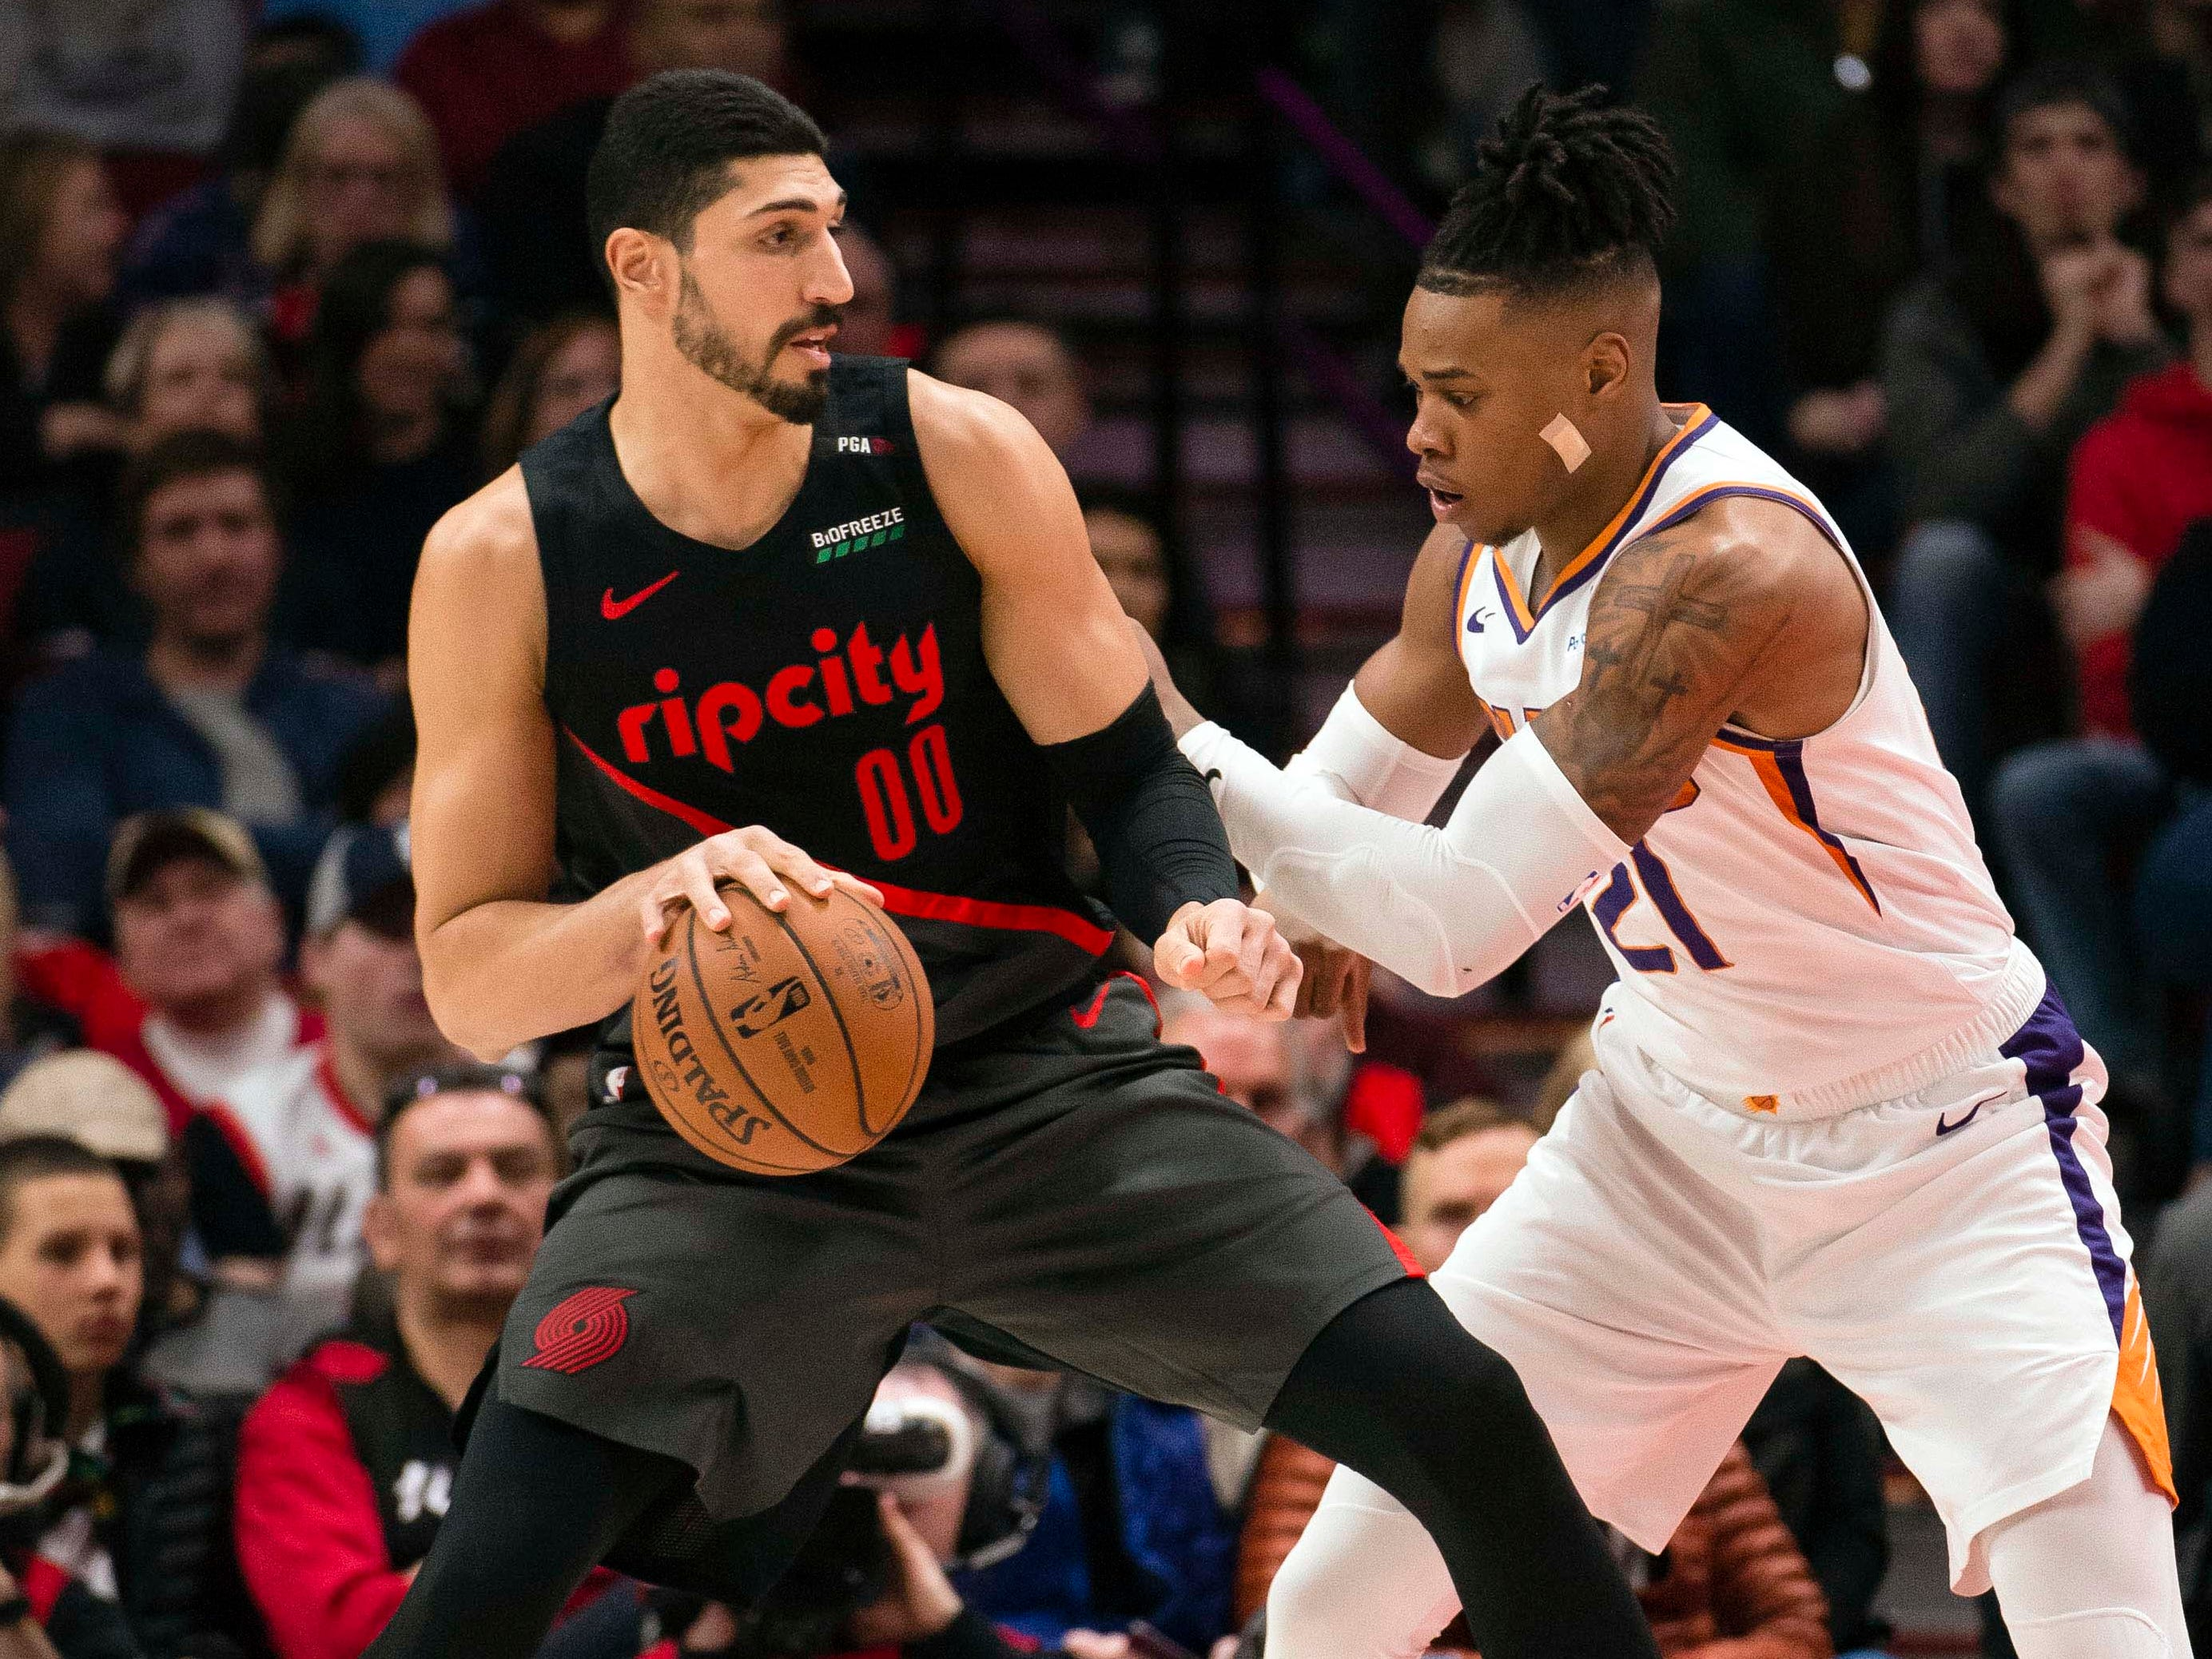 Mar 9, 2019; Portland, OR, USA; Portland Trail Blazers center Enes Kanter (00) drives to the basket against Phoenix Suns forward Richaun Holmes (21) during the first half at Moda Center.